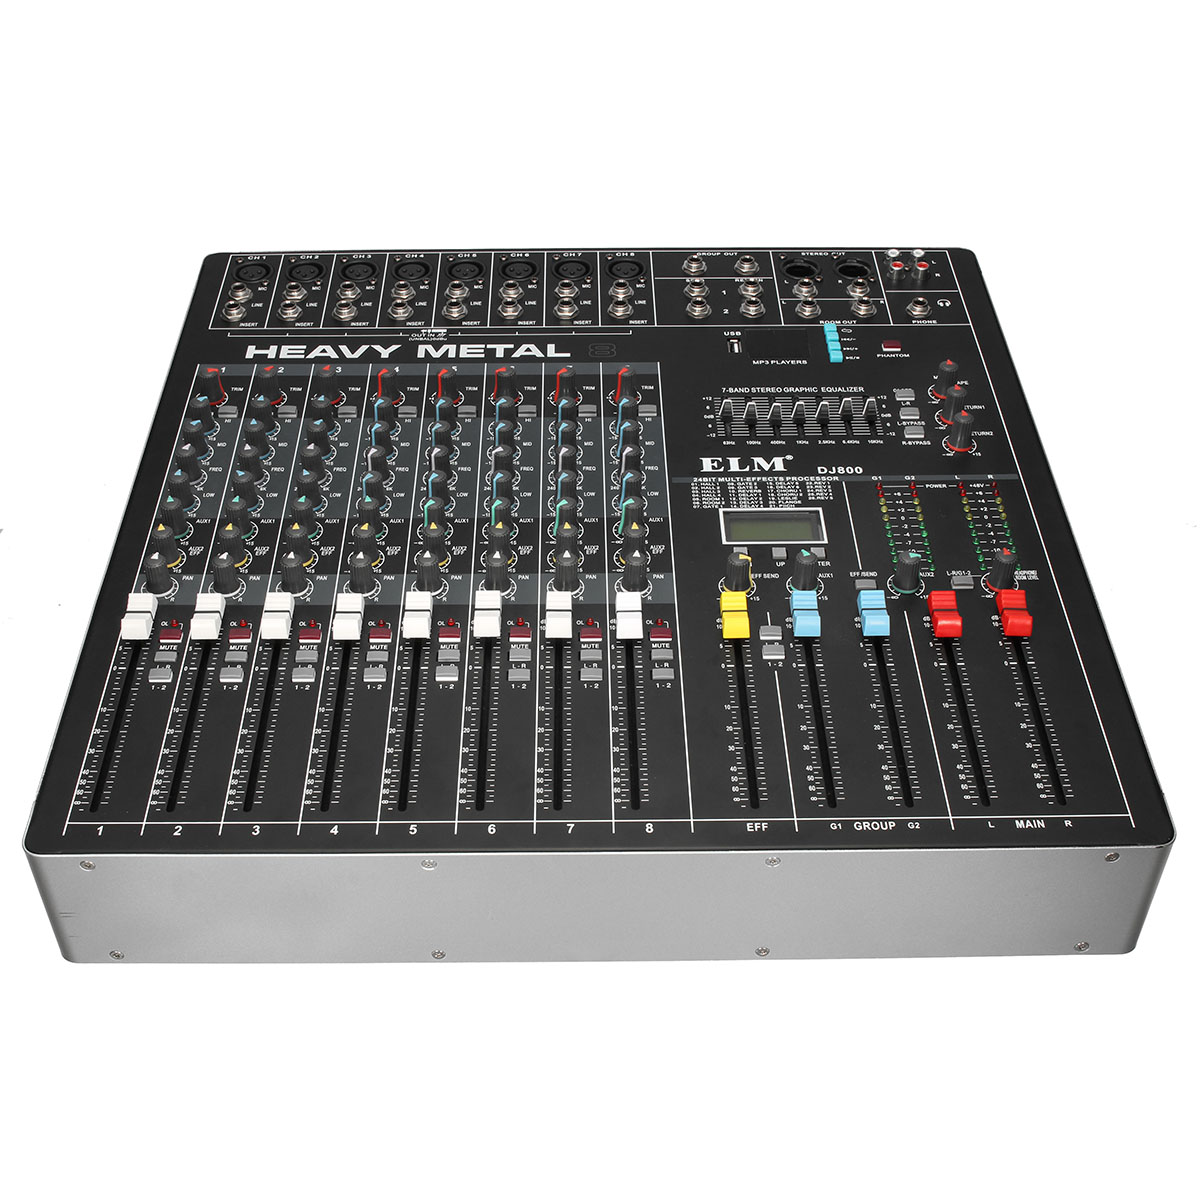 LEORY  Professional 8 Channels Power Amplifie Mixer DSP Digital Audio Mixing Console with 48V Phantom Power USB SlotLEORY  Professional 8 Channels Power Amplifie Mixer DSP Digital Audio Mixing Console with 48V Phantom Power USB Slot